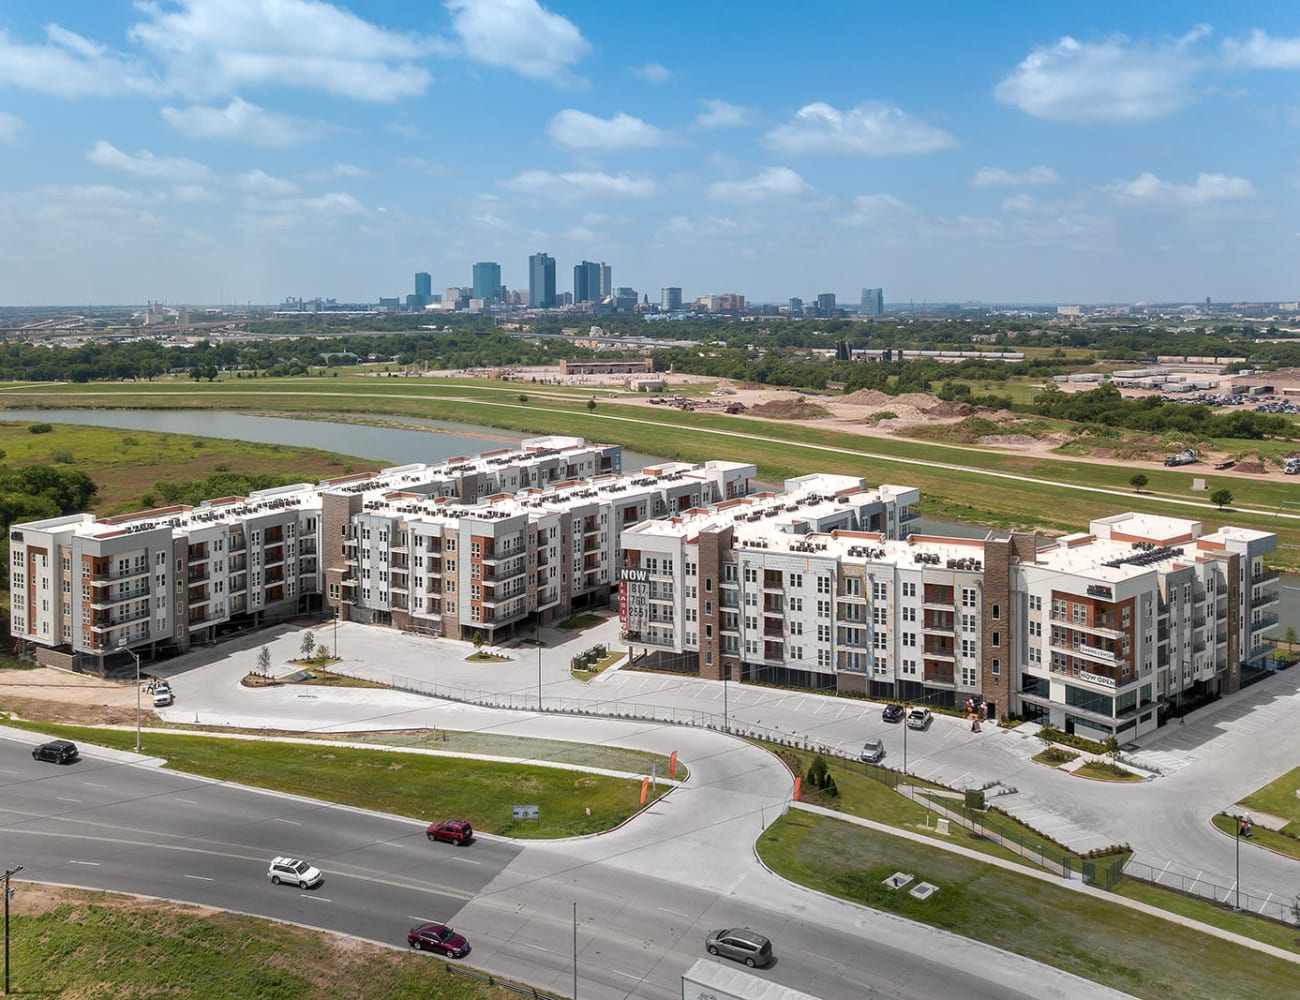 Aerial view of Shelby at Northside in Fort Worth, Texas